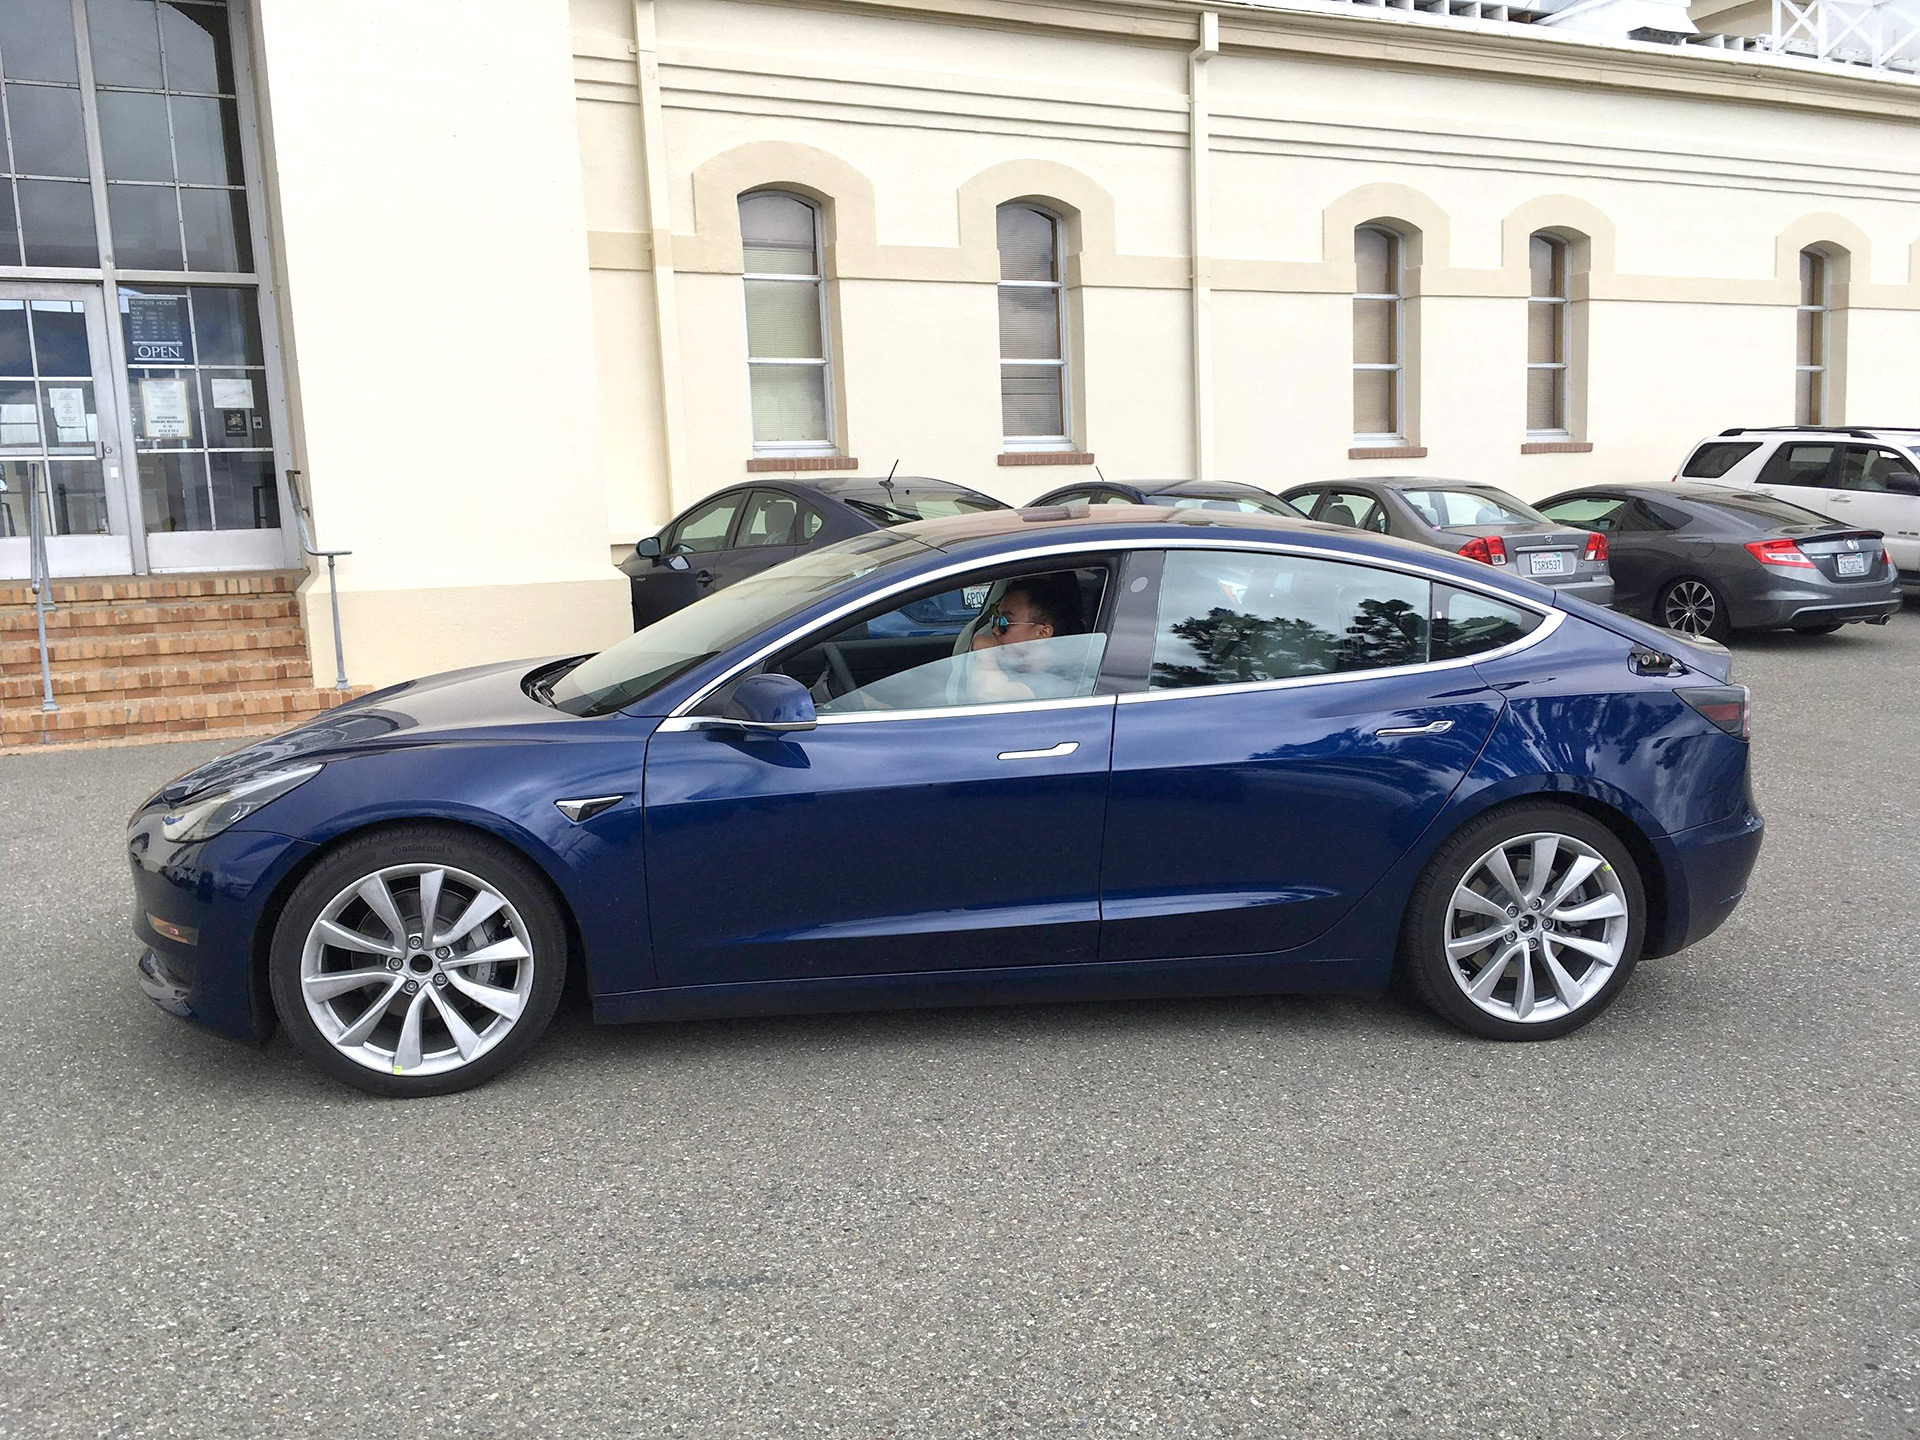 Blue Tesla Model 3 release candidate going for test drive